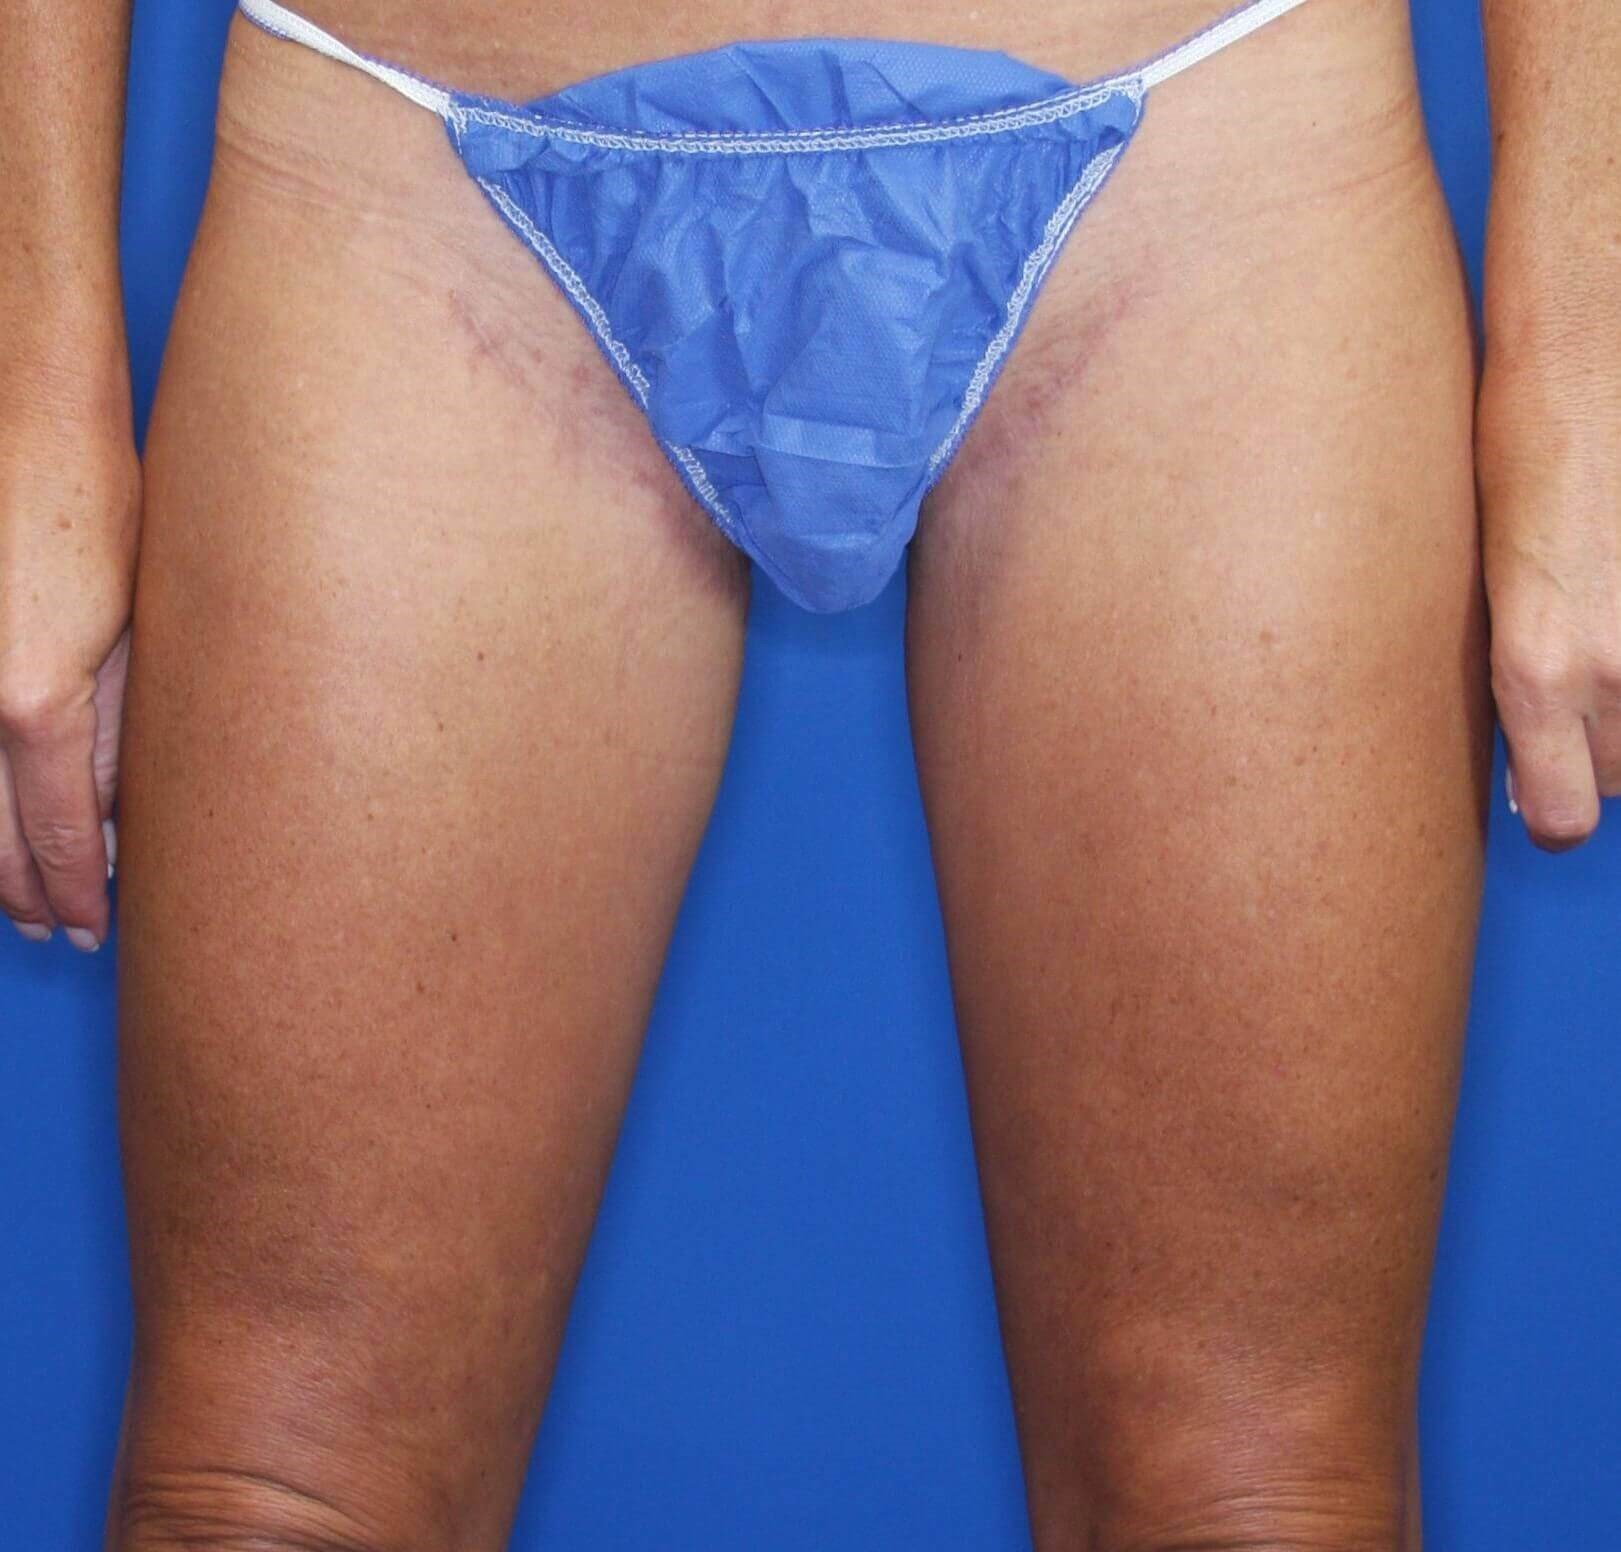 Medial Thigh Lift 10 months postop